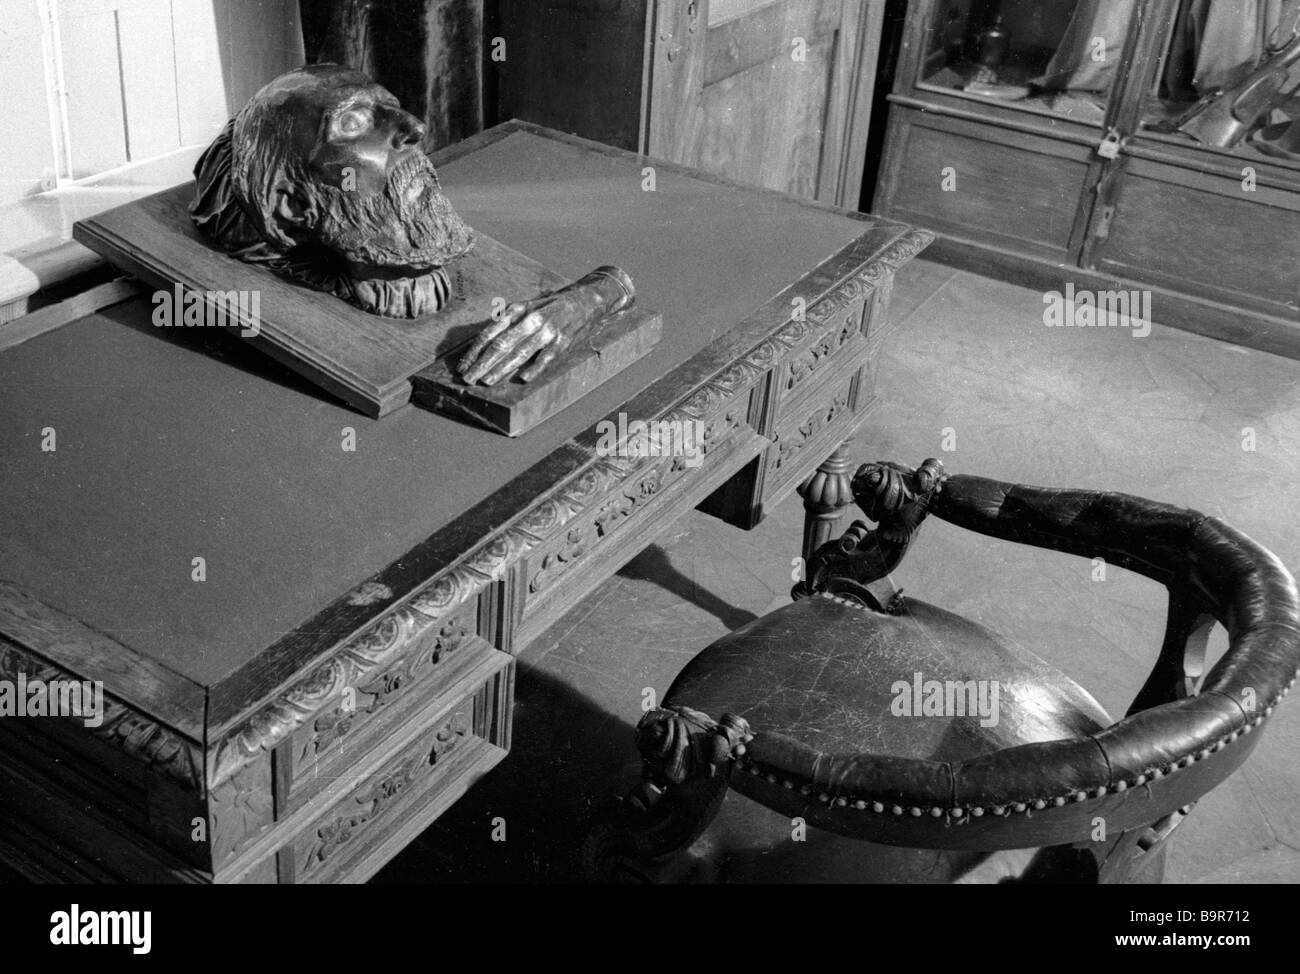 A death mask and a cast of writer Ivan Turgenev s hand kept in the writer s house museum - Stock Image